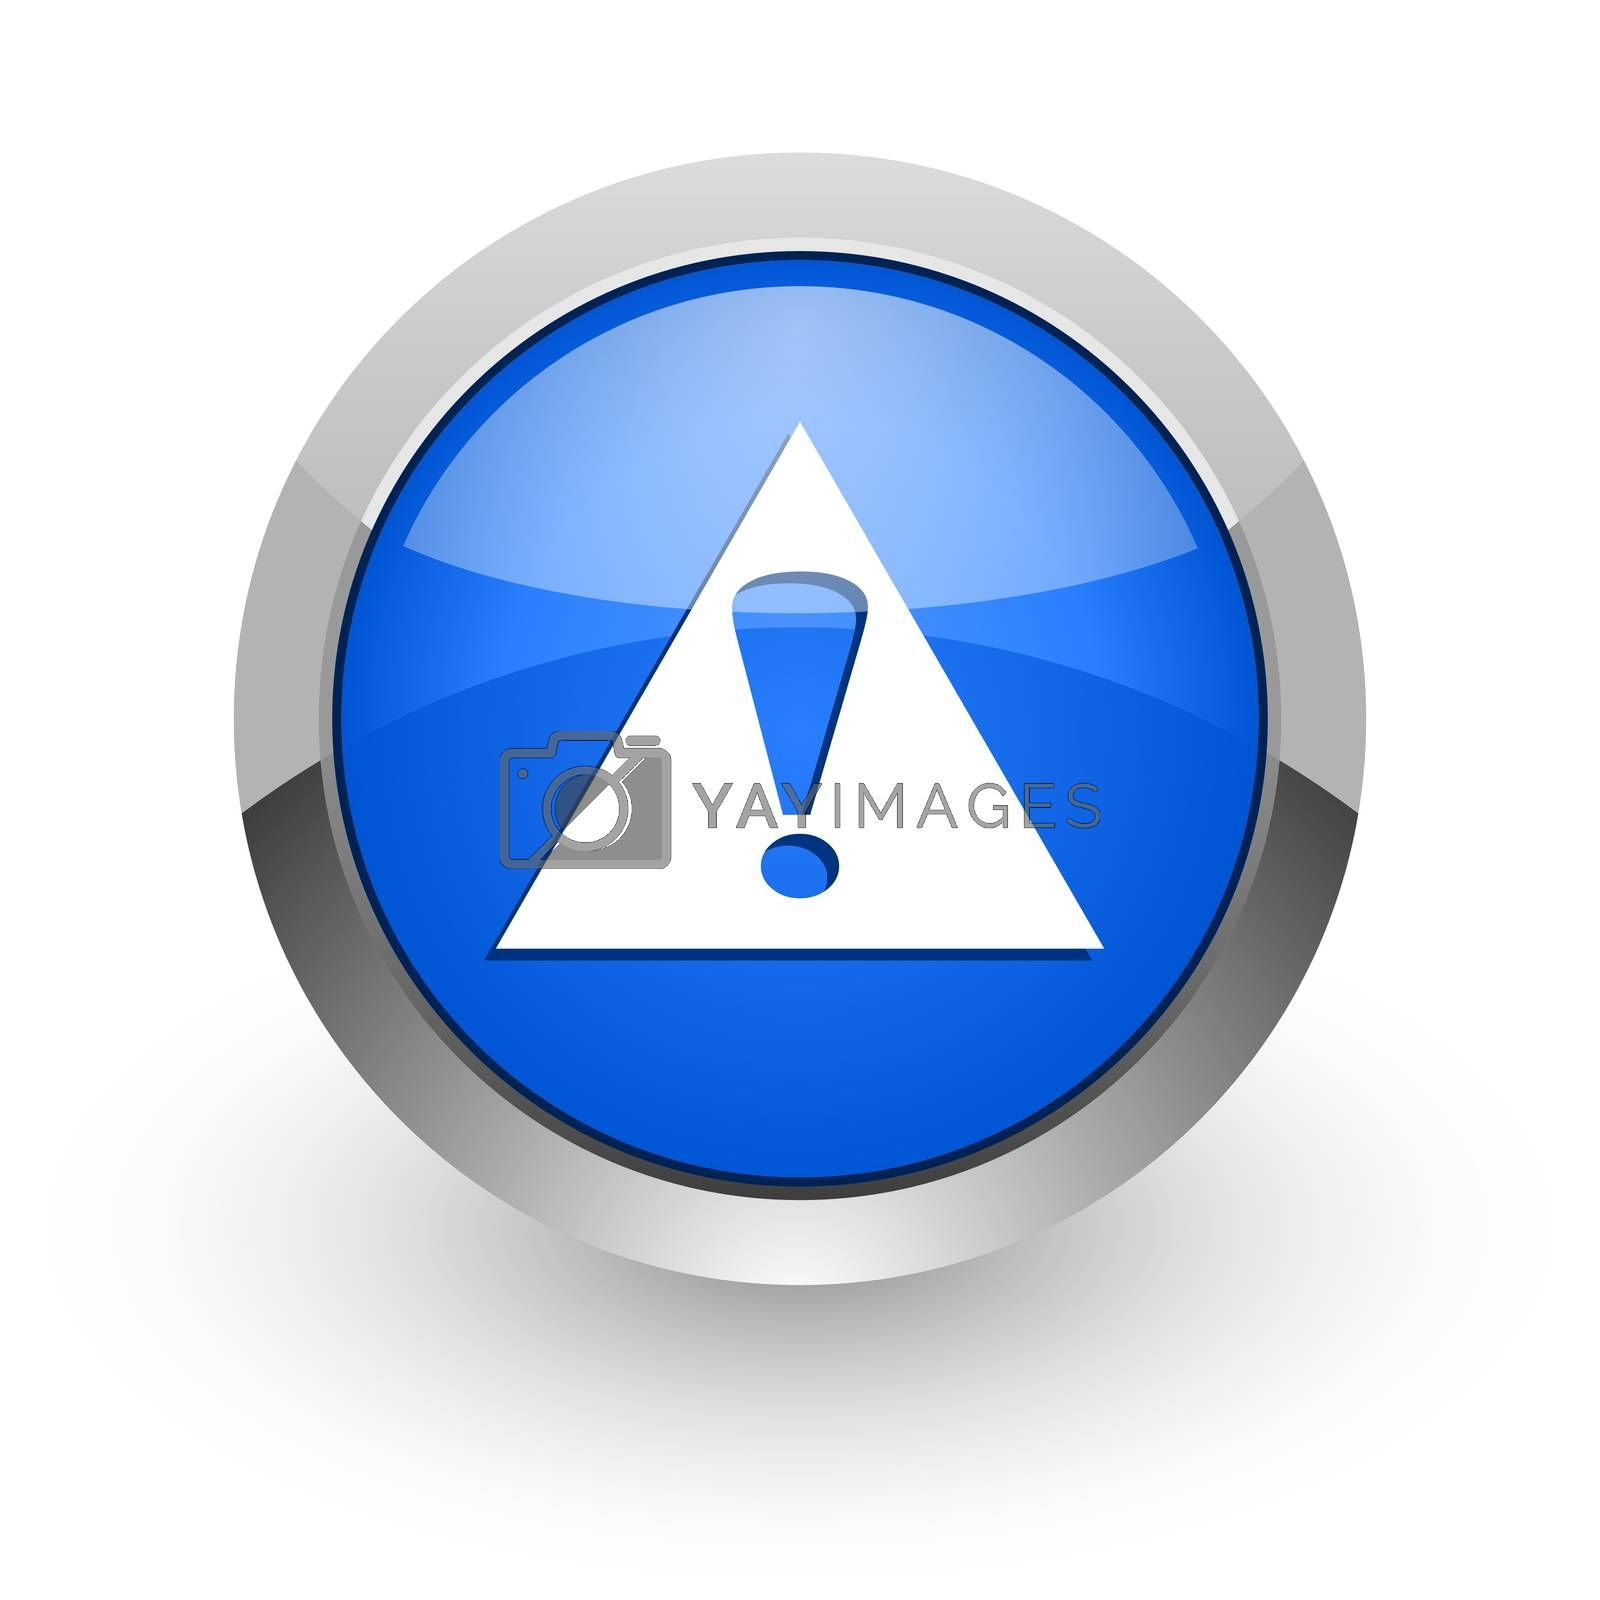 Royalty free image of exclamation sign blue glossy web icon by alexwhite